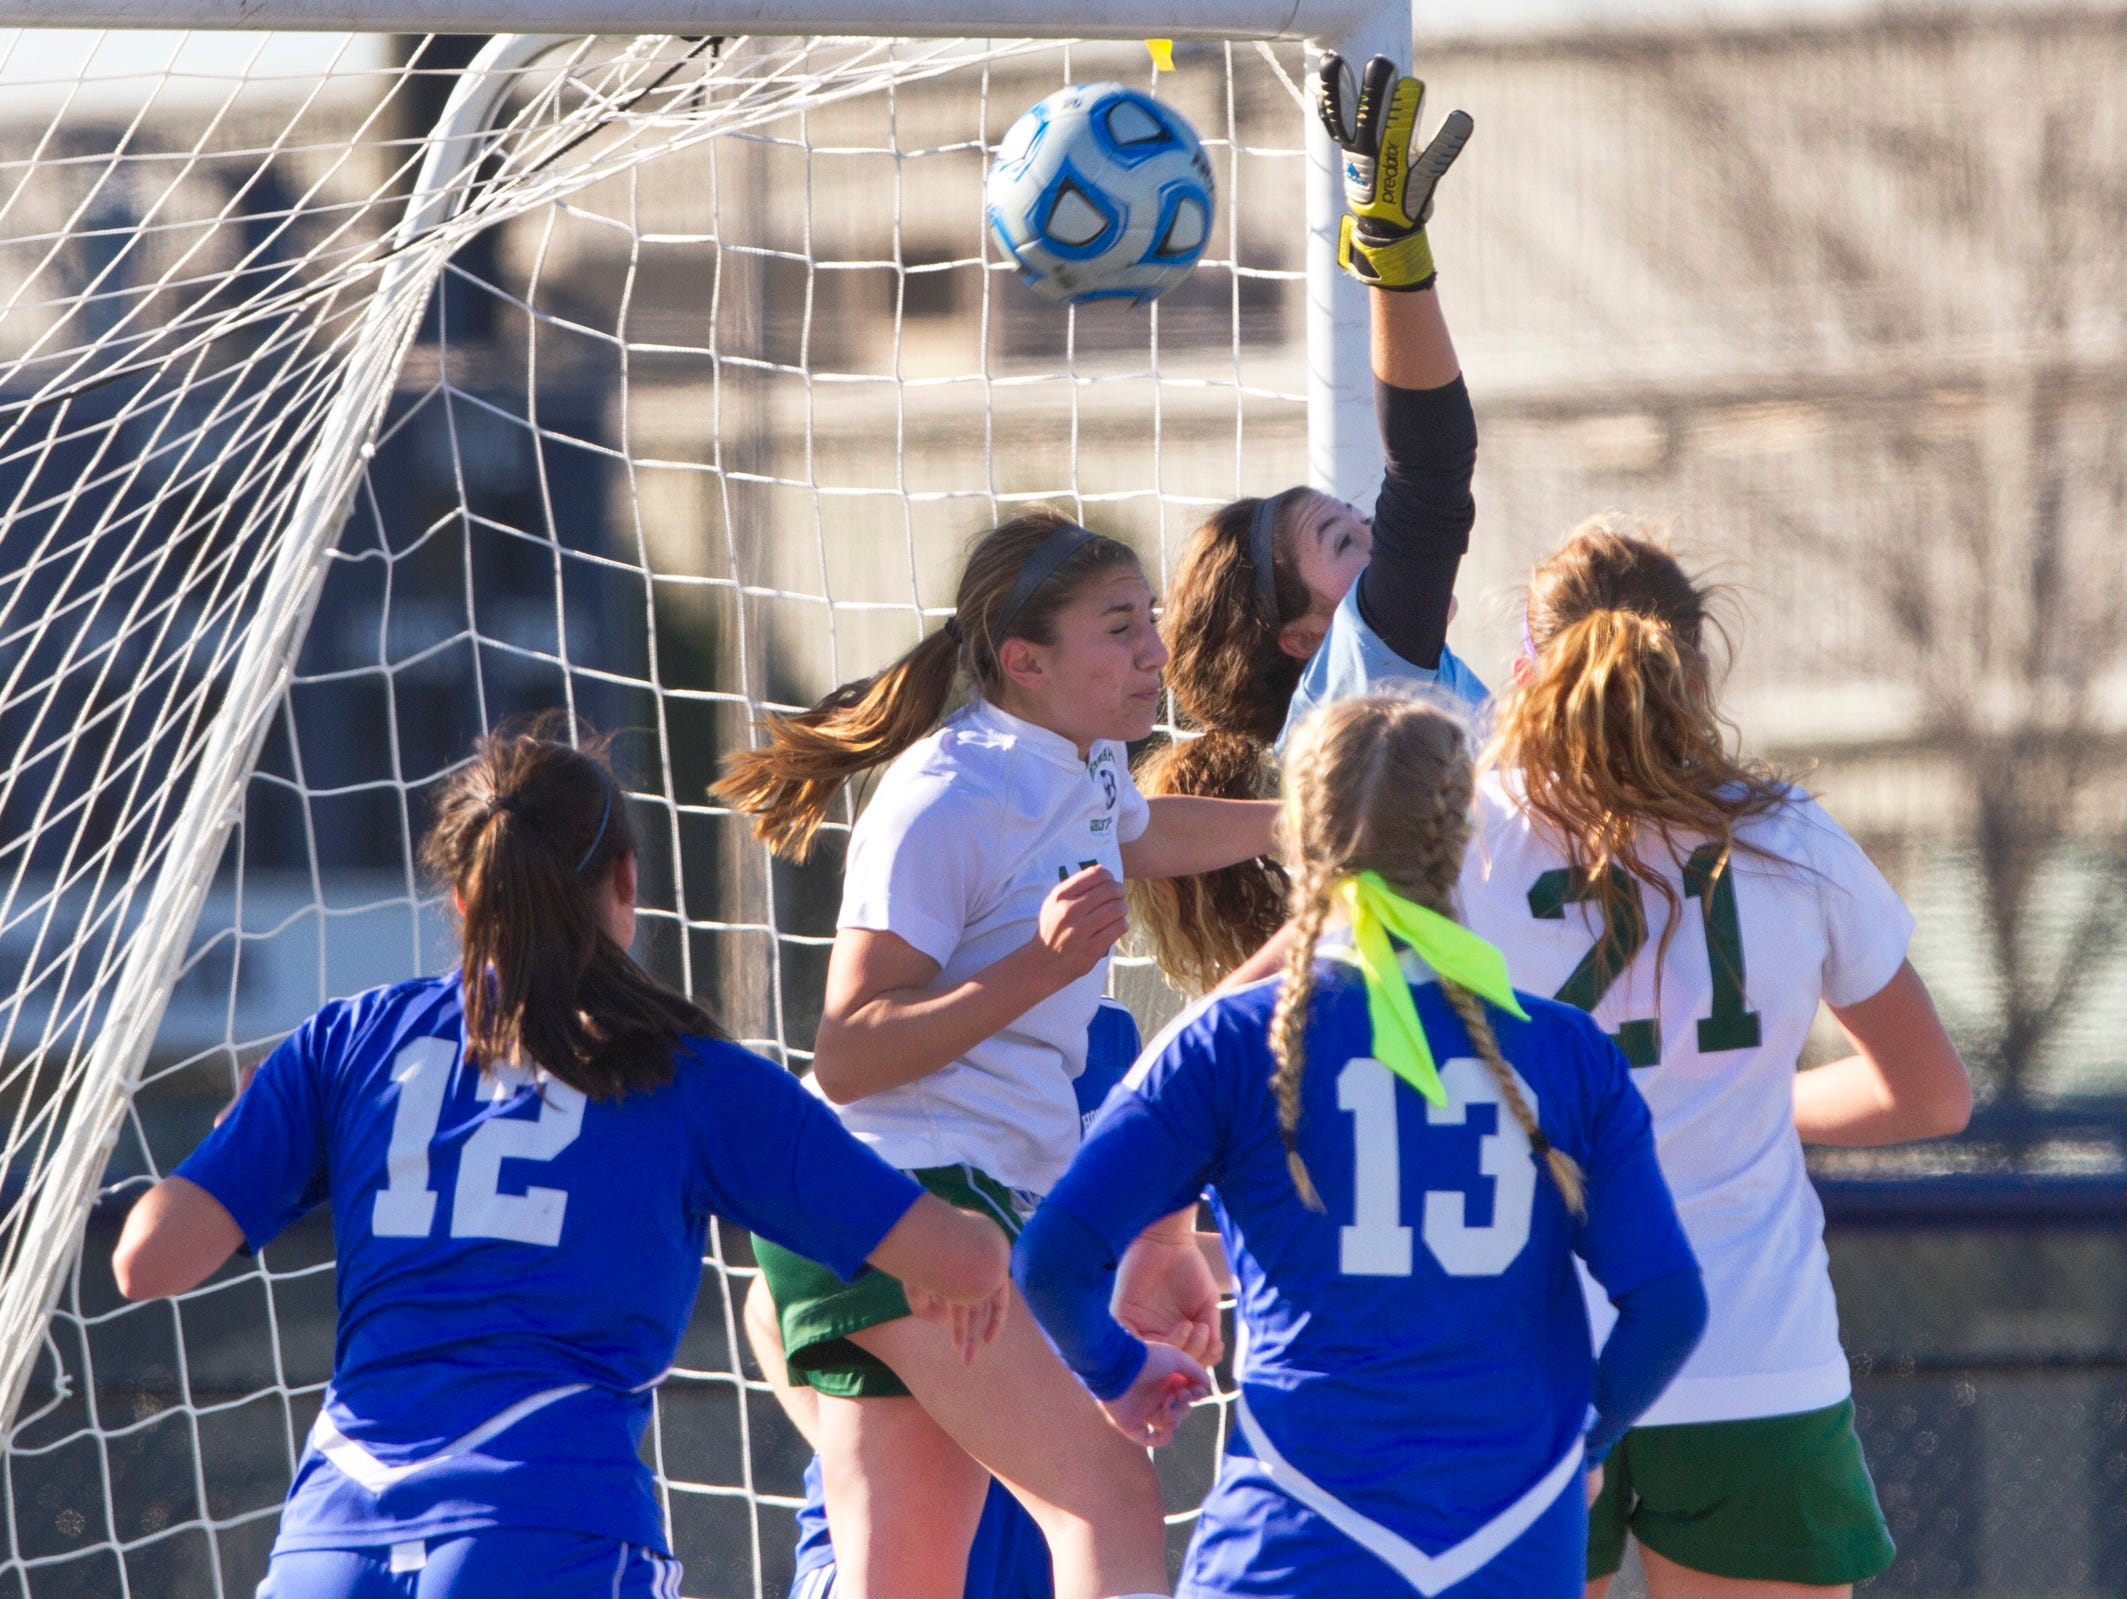 Holmdel goalie Mattie Milkowski reaches back can't stop a shot on goal that was eventually kicked in for Ramapo's second goal in their 2-0 win over Holmdel. Holmdel Girls Soccer vs Ramapo in NJSIAA State Group II Championship at Kean University on November 21, 2015 in Union, NJ.